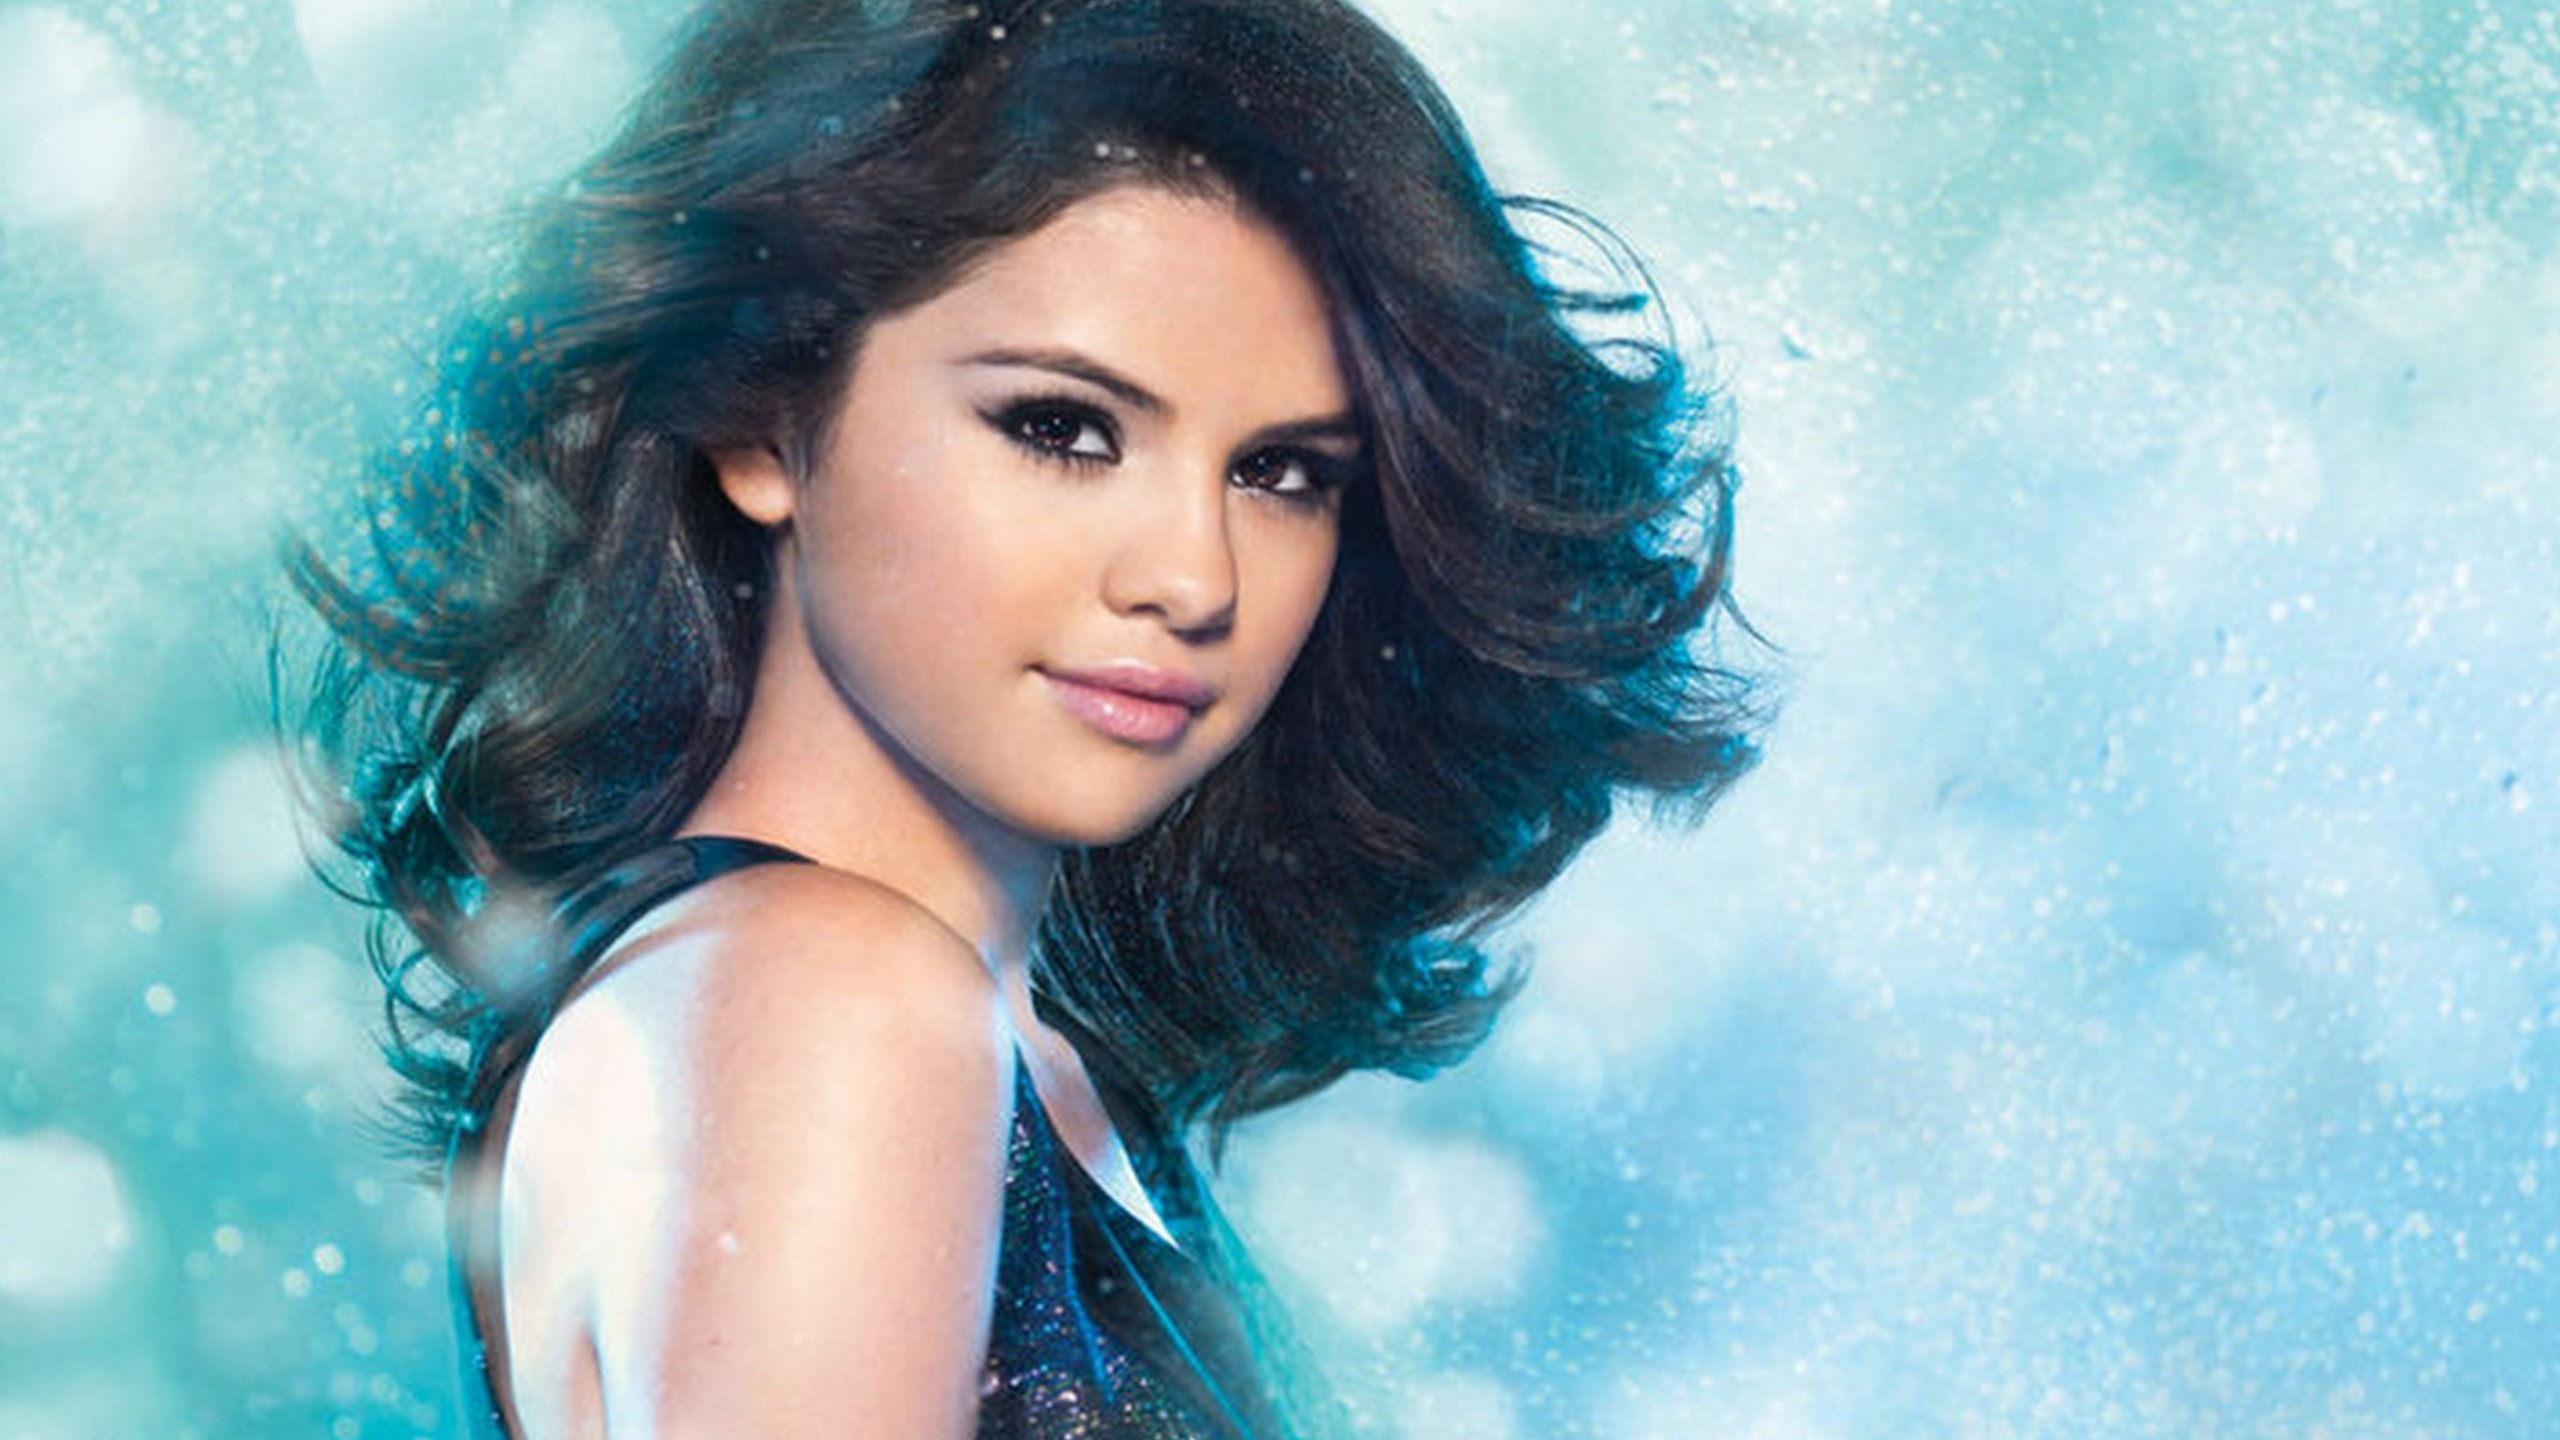 Celebrity Contests images Selena Gomez HD wallpaper and background 2560x1440